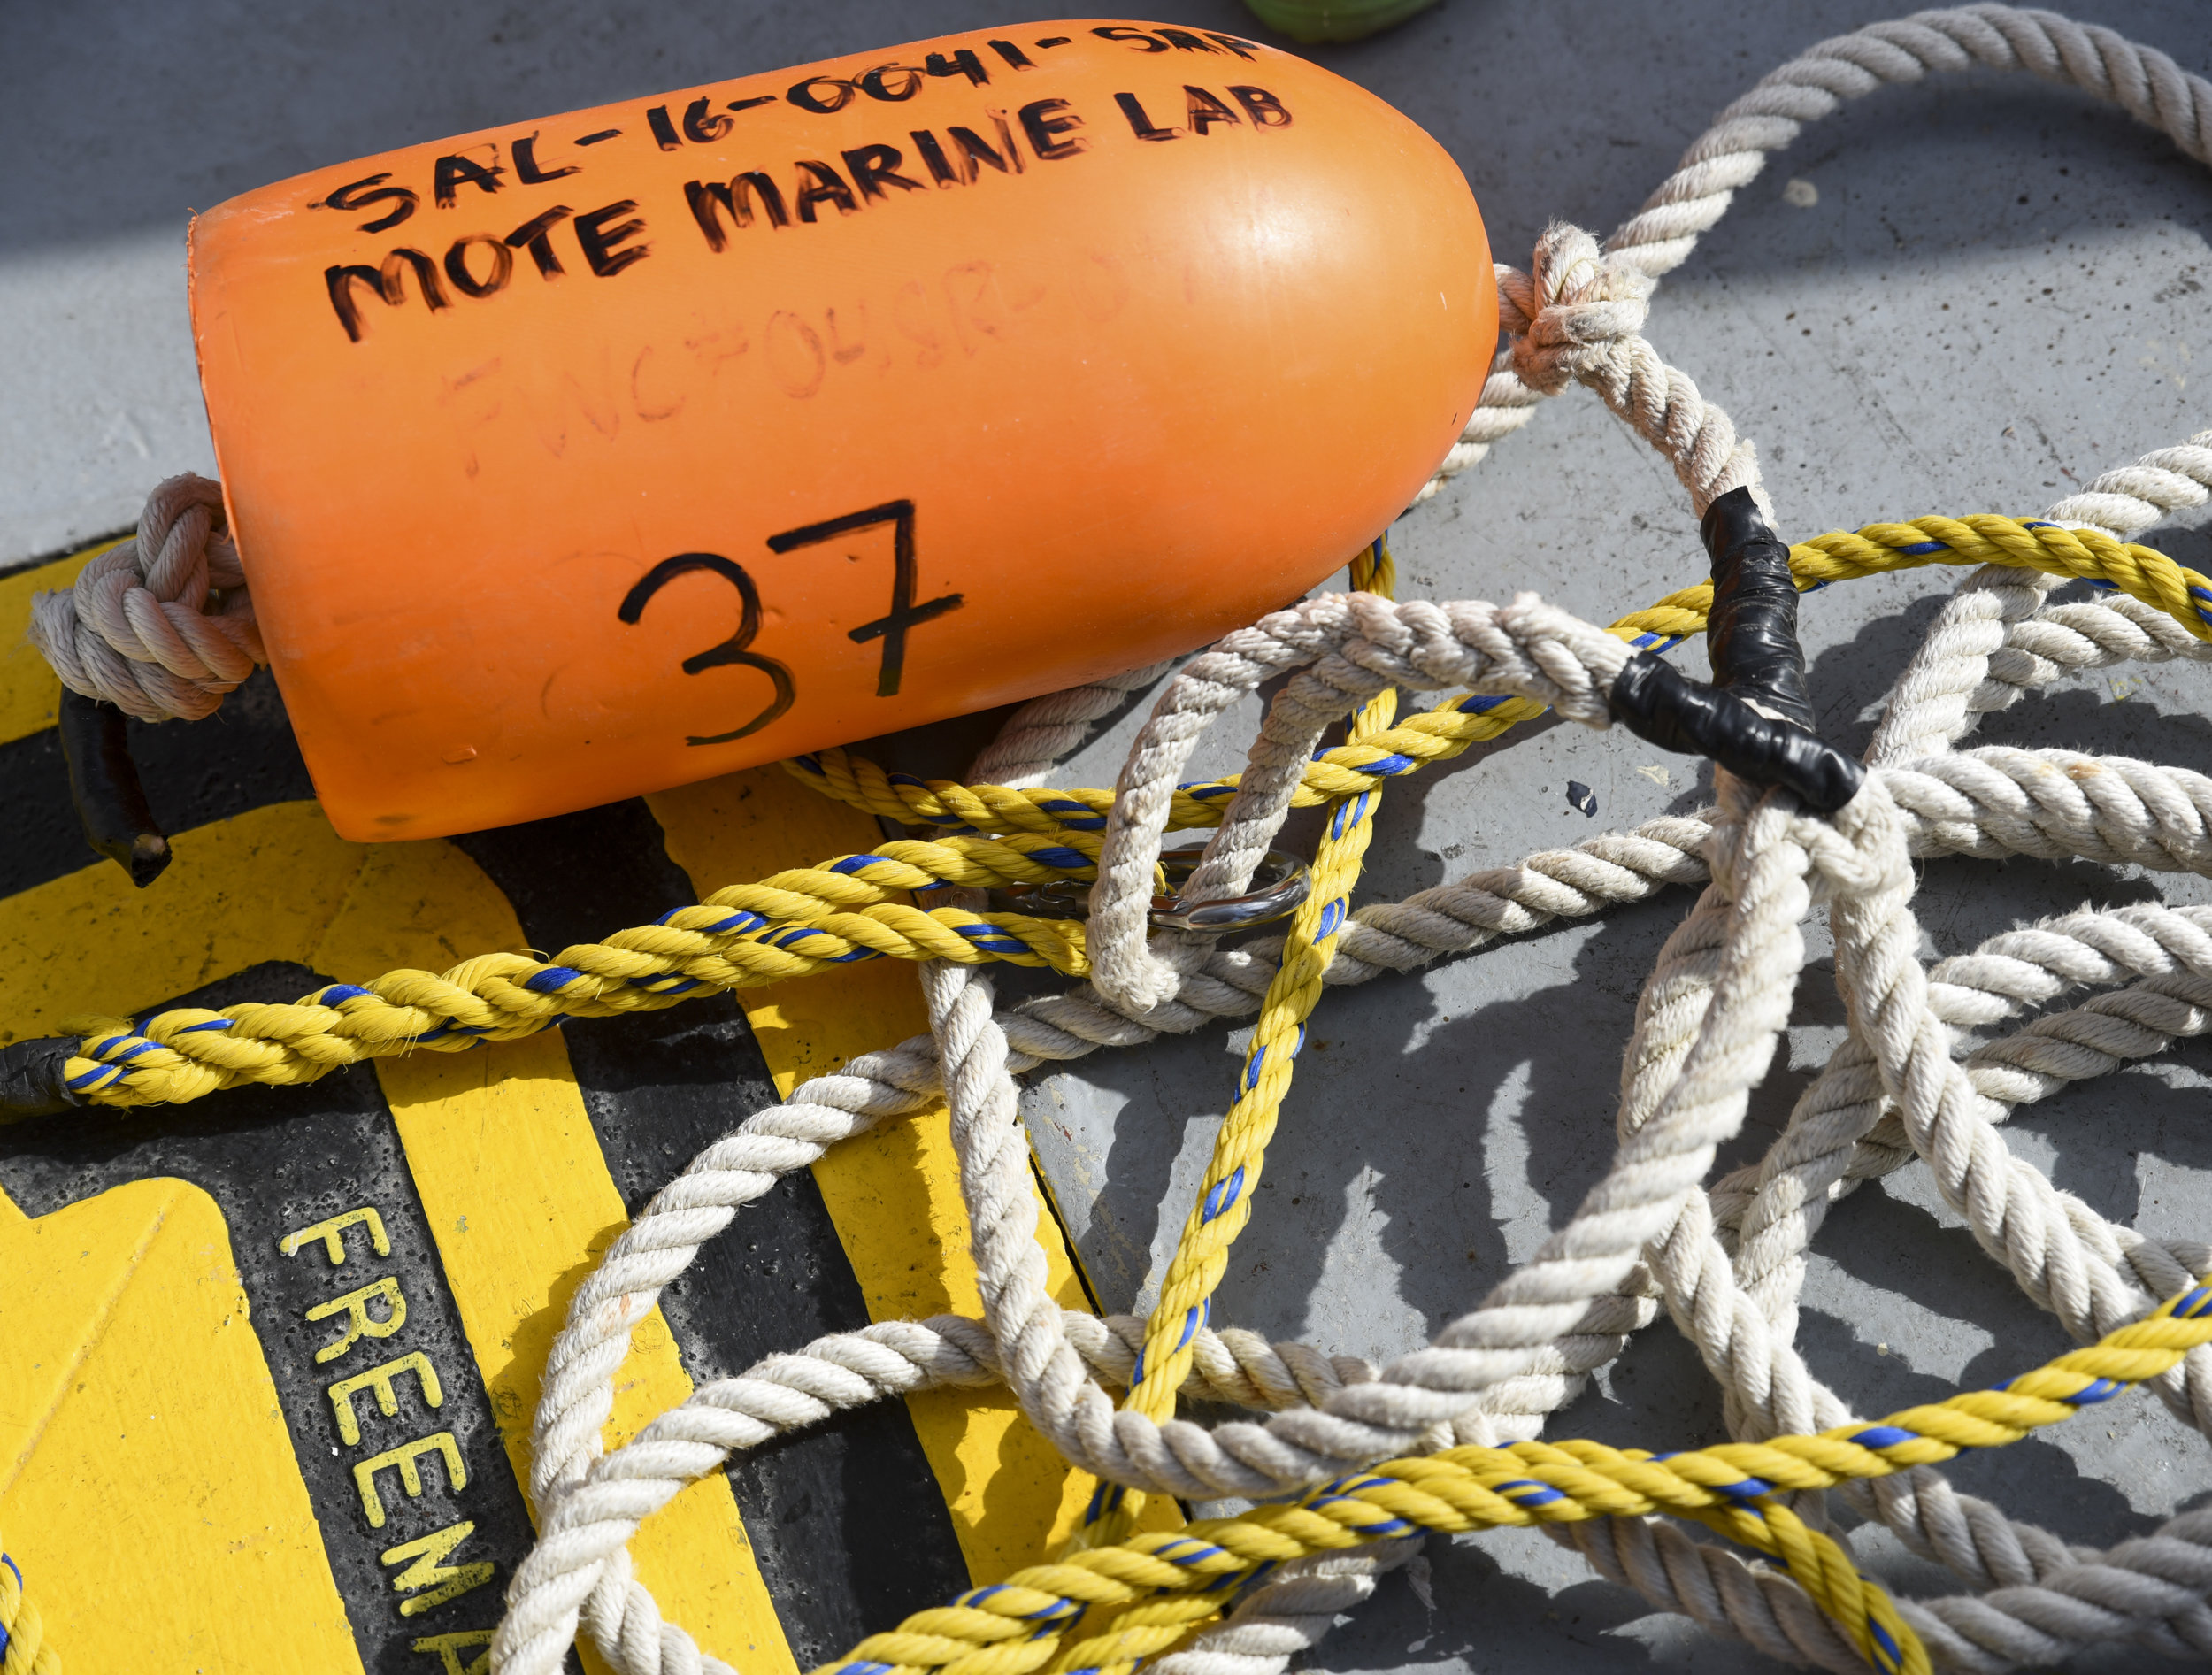 An orange floater lies on the outside deck of the R/V Bellows.The brightly-colored floater was attached via rope to a baited hook, which was left in the ocean in the hopes of attracting a shark. After a shark was captured, it was brought on board, studied, and then released back into the water.